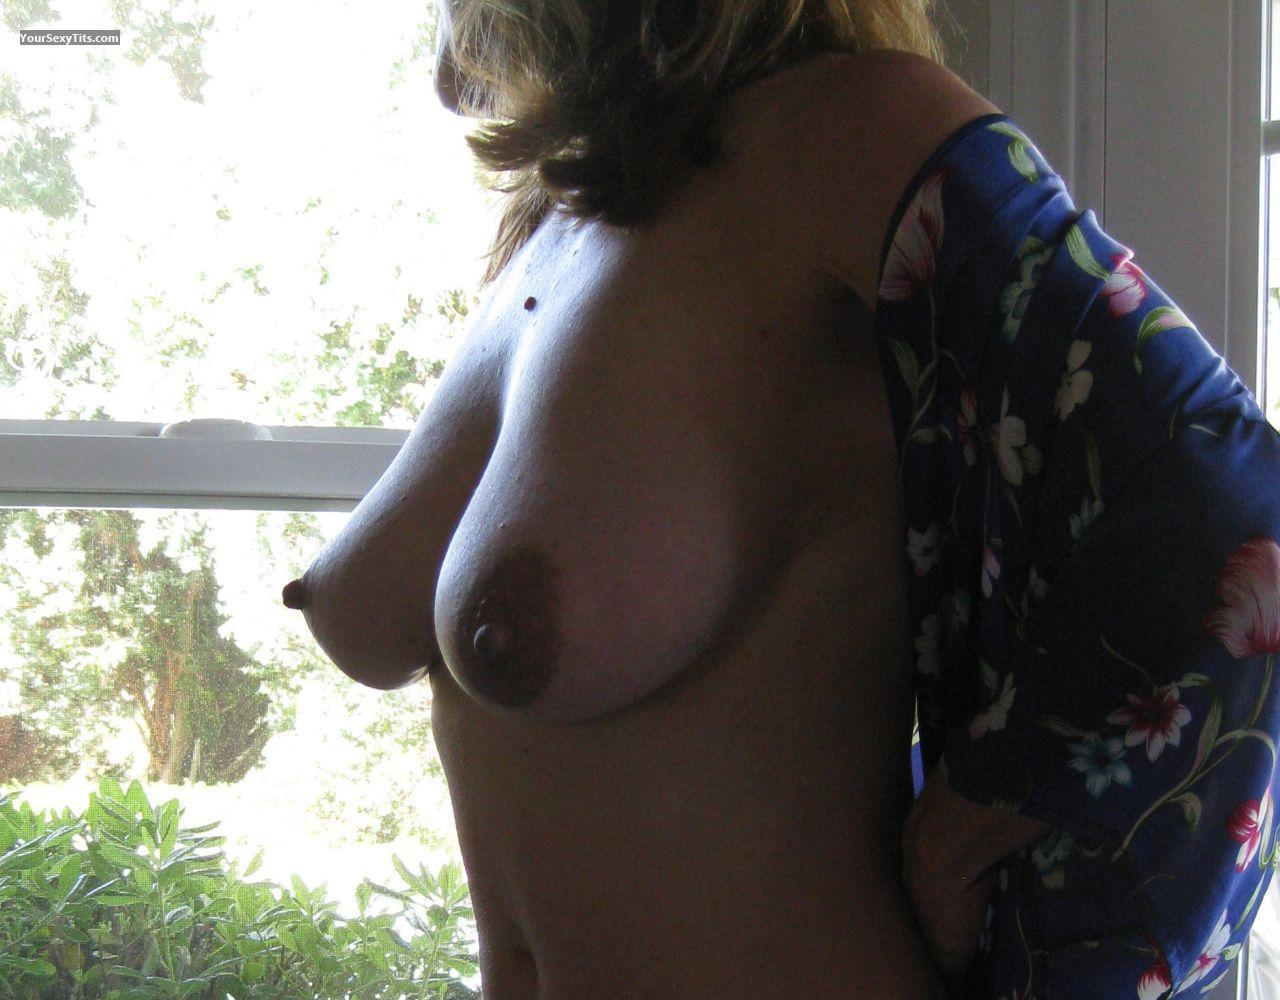 Tit Flash: Medium Tits - Darlene from United States